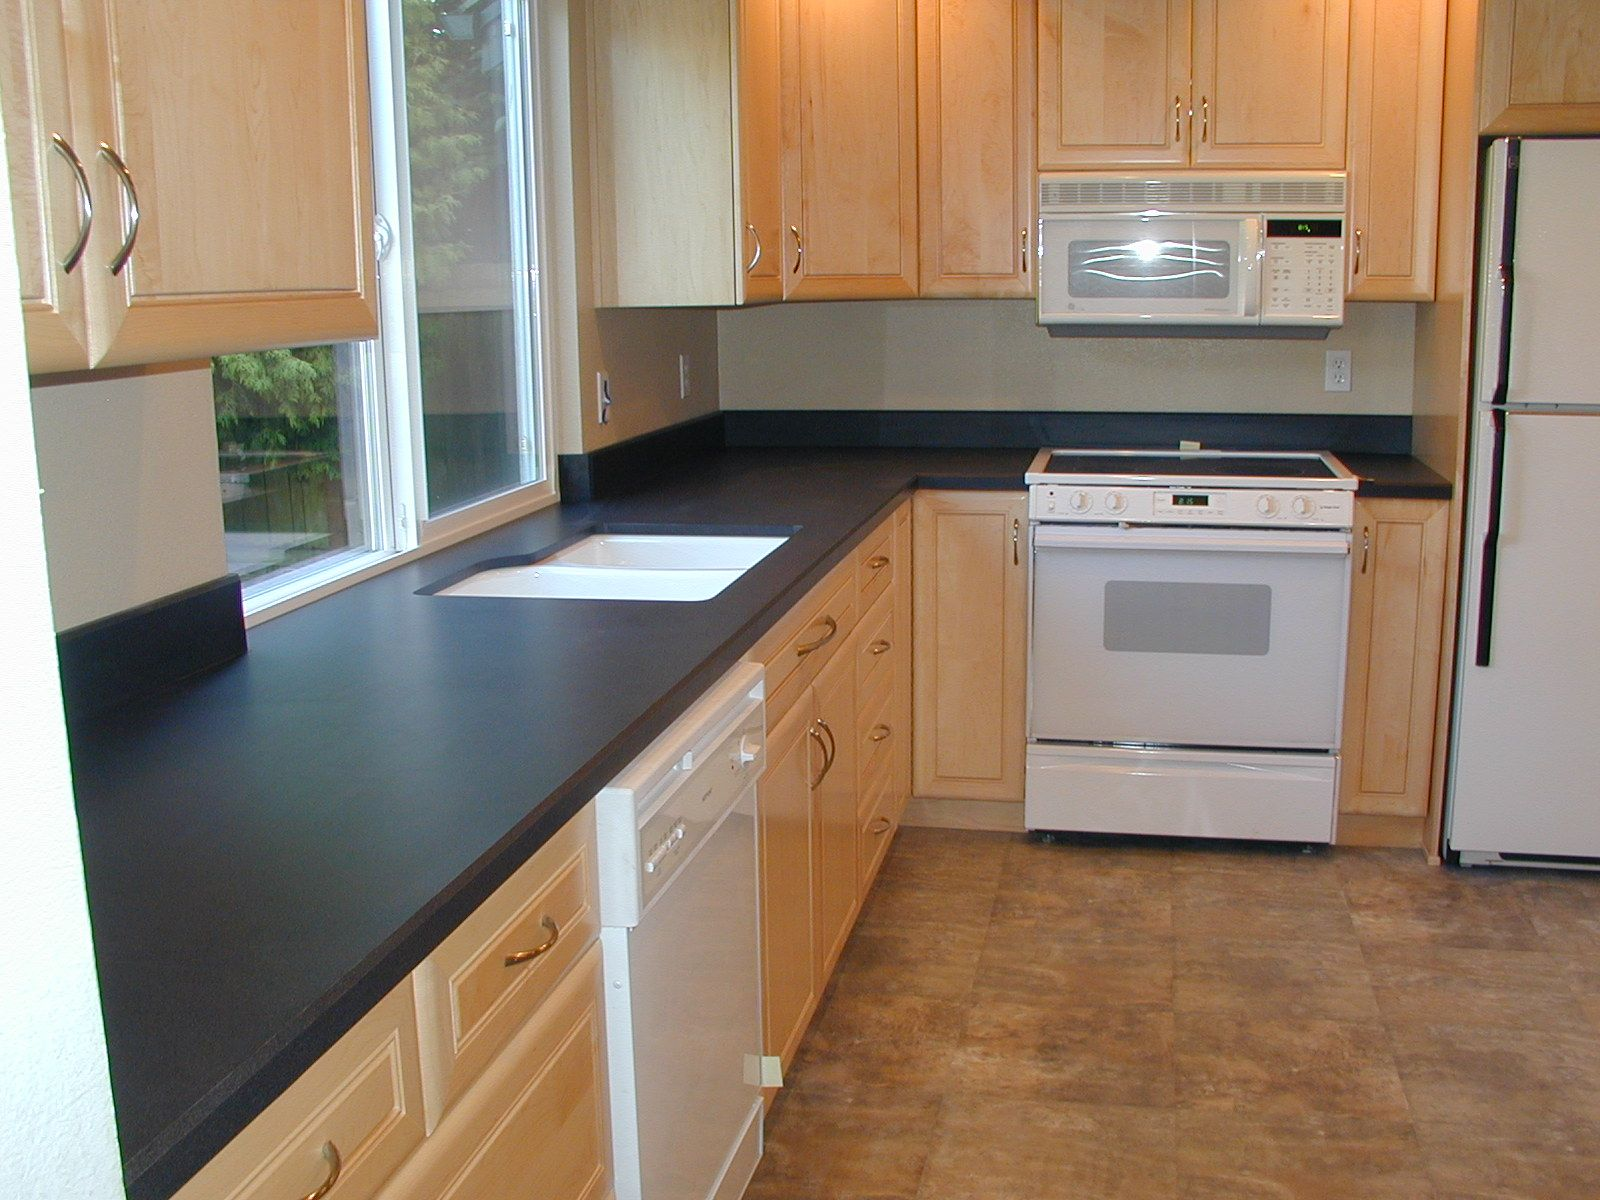 Kitchen ideas with dark countertops countertop design for Kitchen countertop options pictures